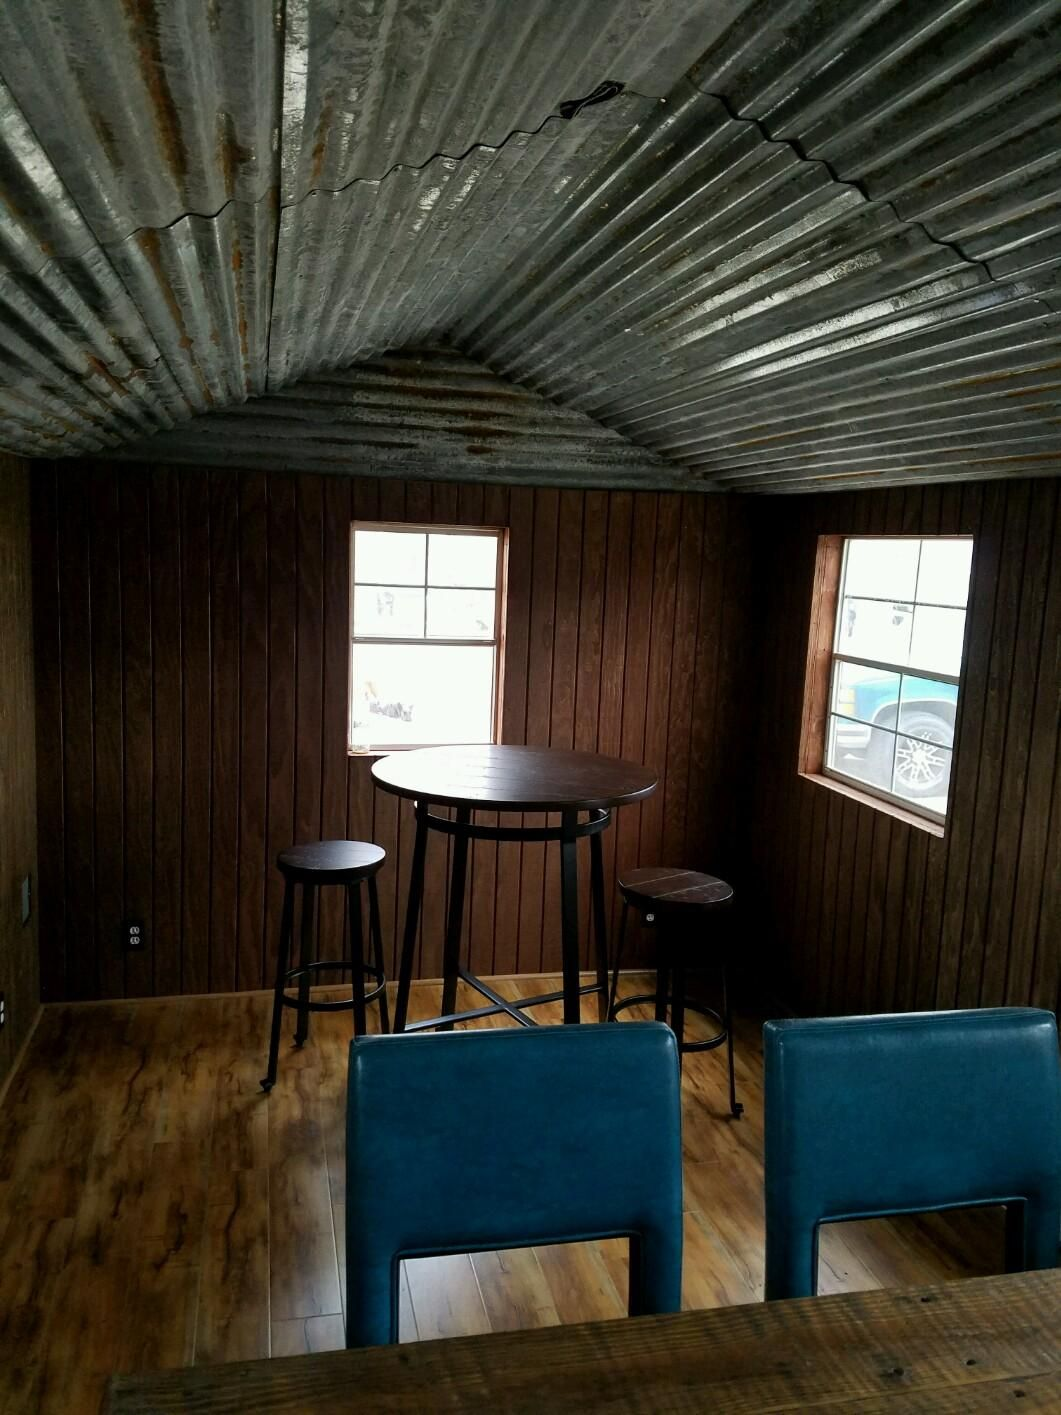 Home Bar She Shed Corrugated Tin Ceiling Pub Shed Shed Ceiling Ideas Backyard Shed Bar Ideas Remodel Bedroom